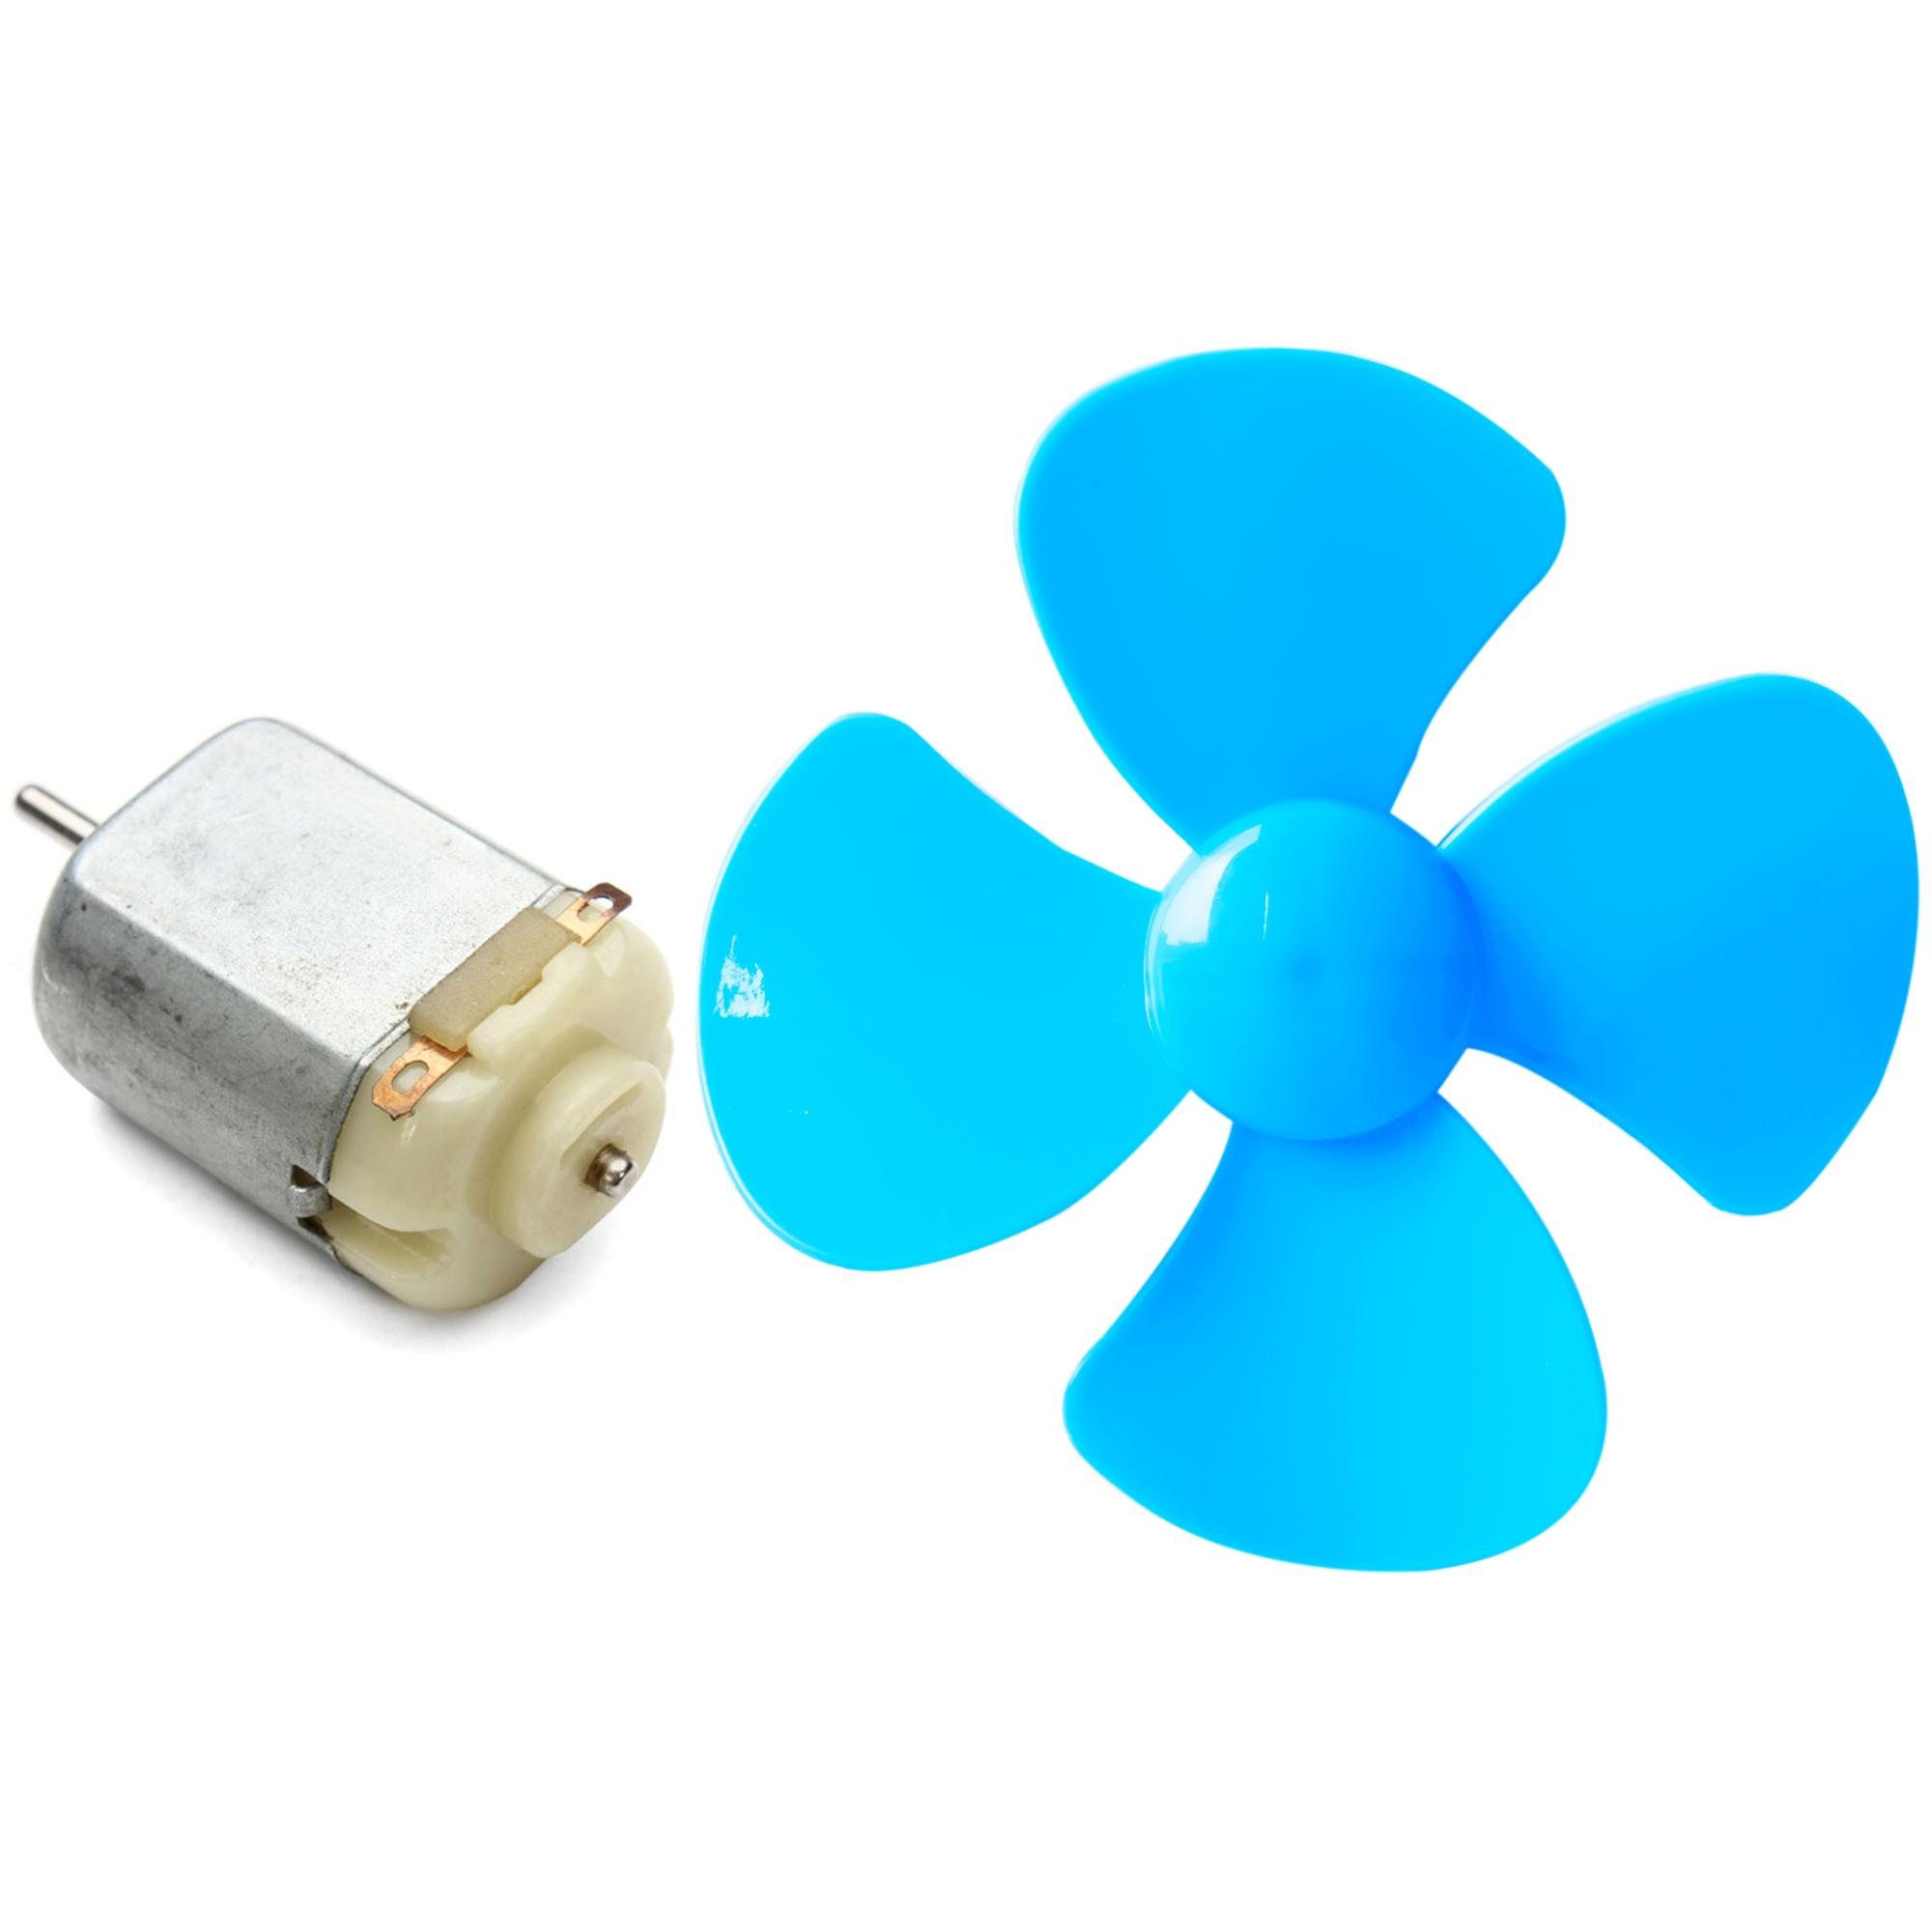 Diy 4 Blade Plastic Fan + Dc 3V-6V Mini Motor For Diy Projects And